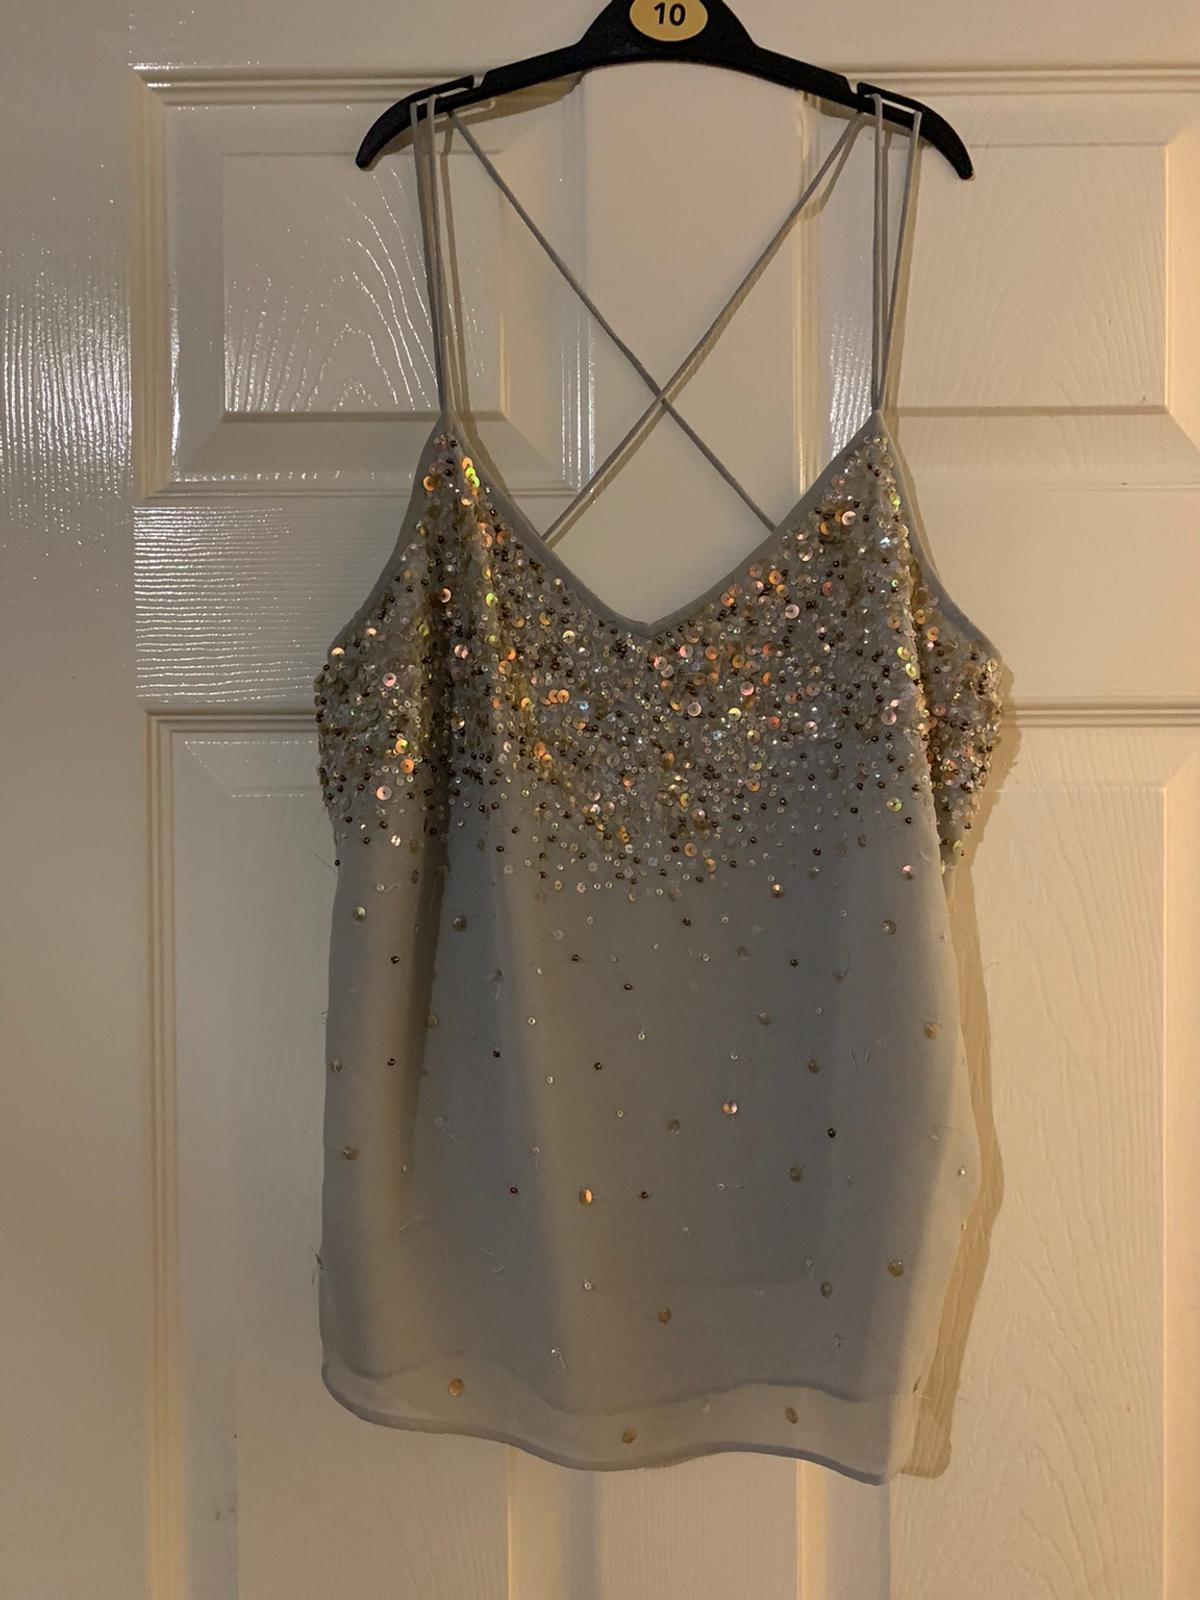 River Island Sequin Top, Size 12. Only worn once or twice.